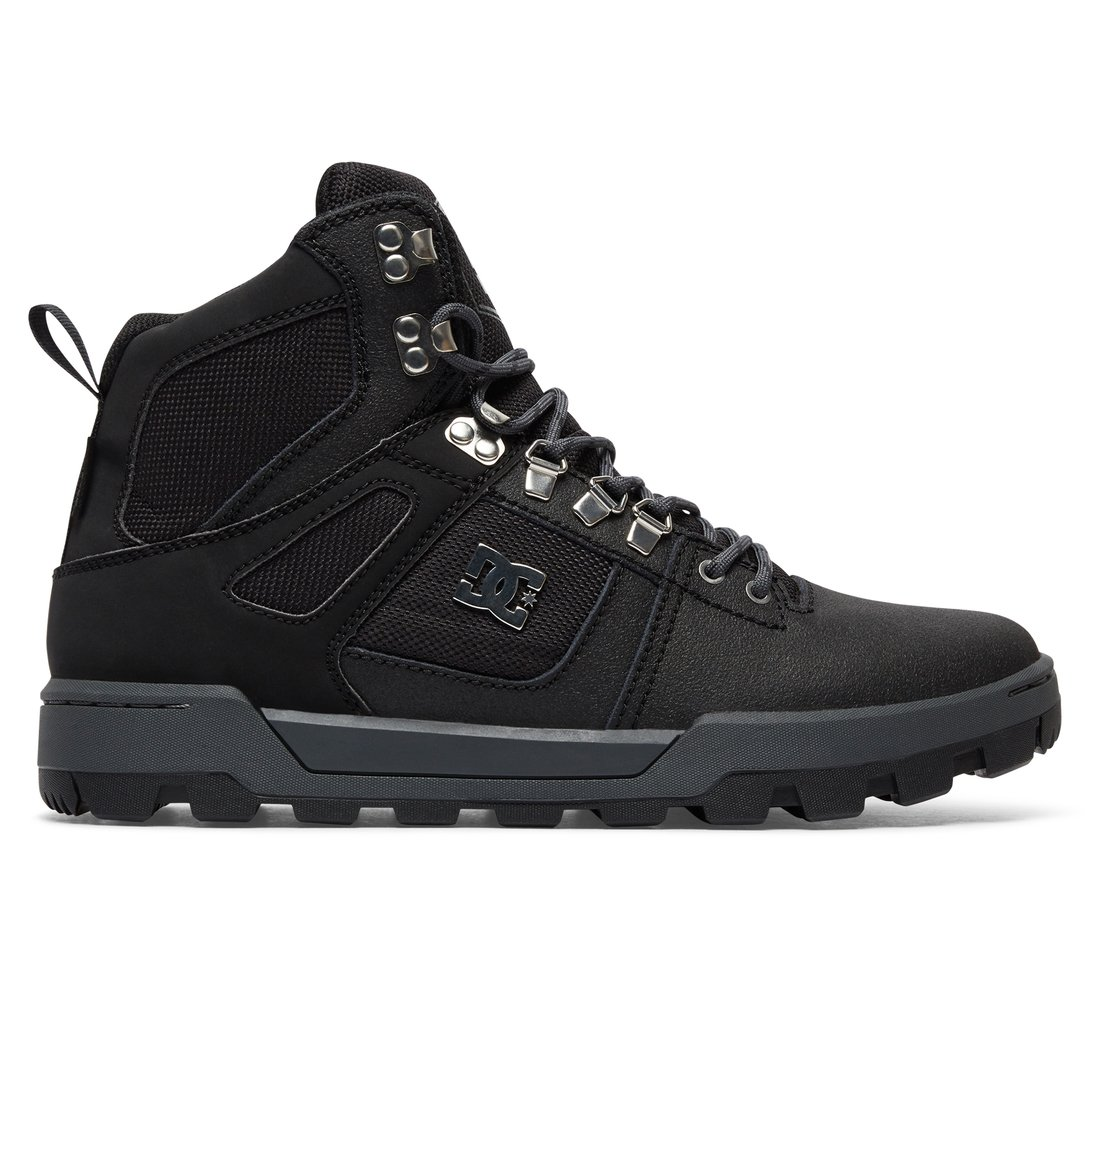 Mens Spartan High Wr Classic Boots DC Cheap Sale With Mastercard New Lower Prices Sneakernews Discount Choice KG7Akj2T